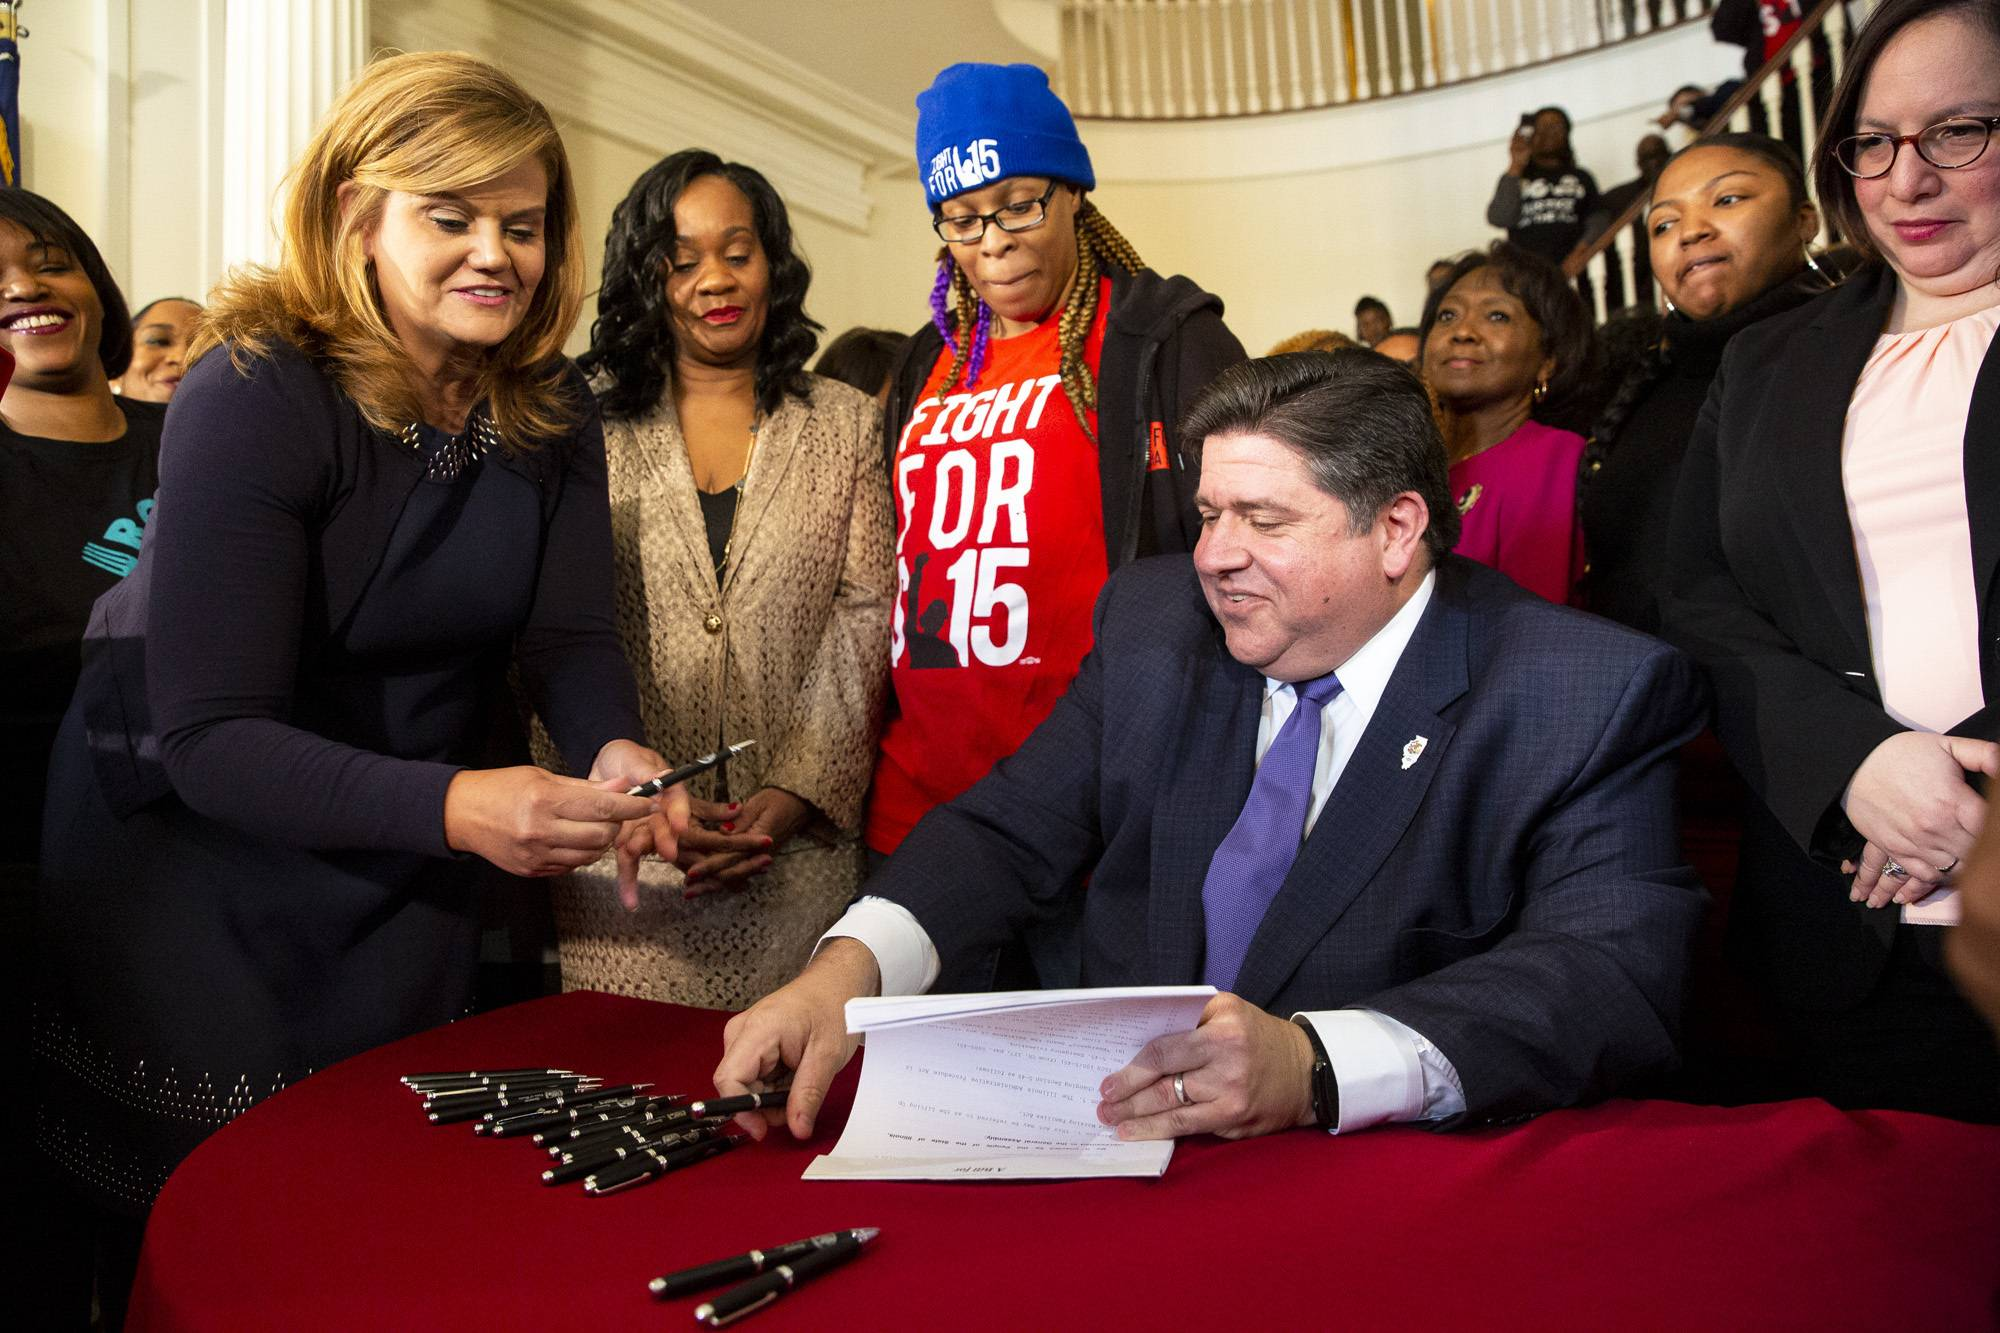 M.K. Pritzker hands pens to her husband, Gov. J.B. Pritzker, Tuesday as he signs SB1 raising the minimum wage in Illinois. Pritzker wants to legalize recreational marijuana and sports betting.